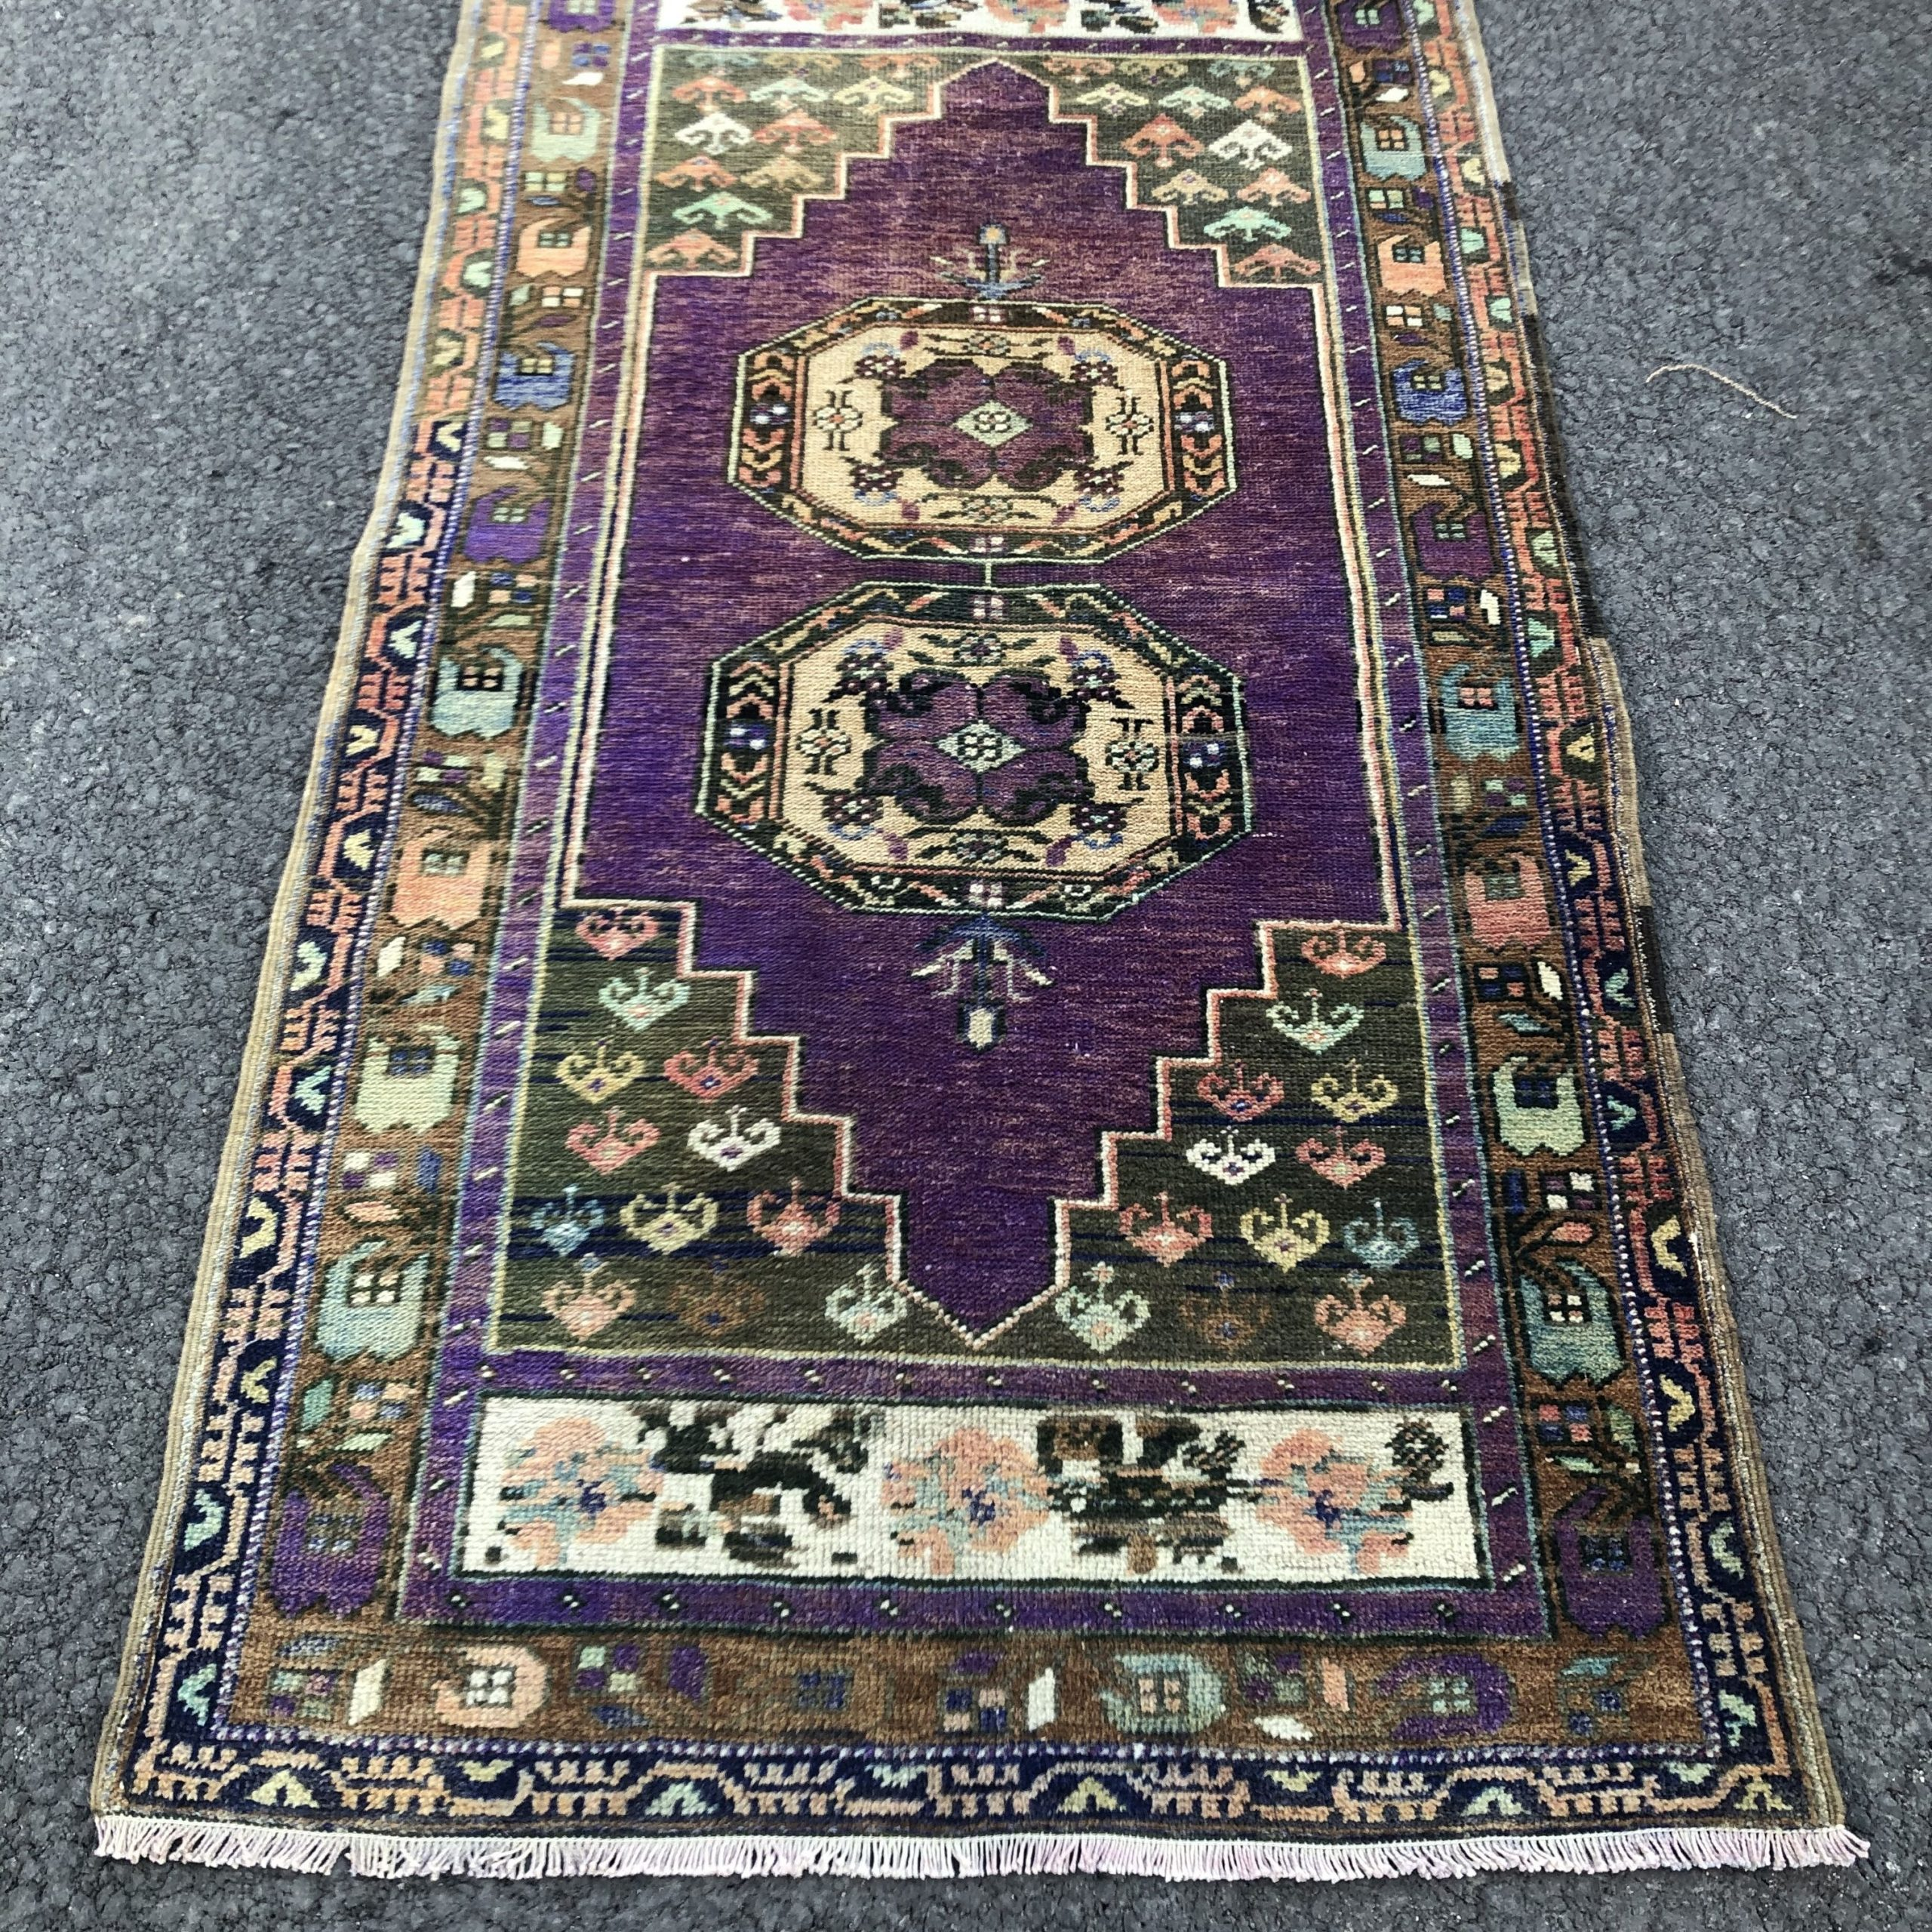 Gorgeous Home Decor Ideas Living Room Modern Boho area Rug with Plum Accents On Magnificent Purple Turkish Rug 3 3 X 6 6 Ft Purple Oushak Rug Turkish On Home Decor Ideas Living Room Modern Boho area Rug with Plum Accents